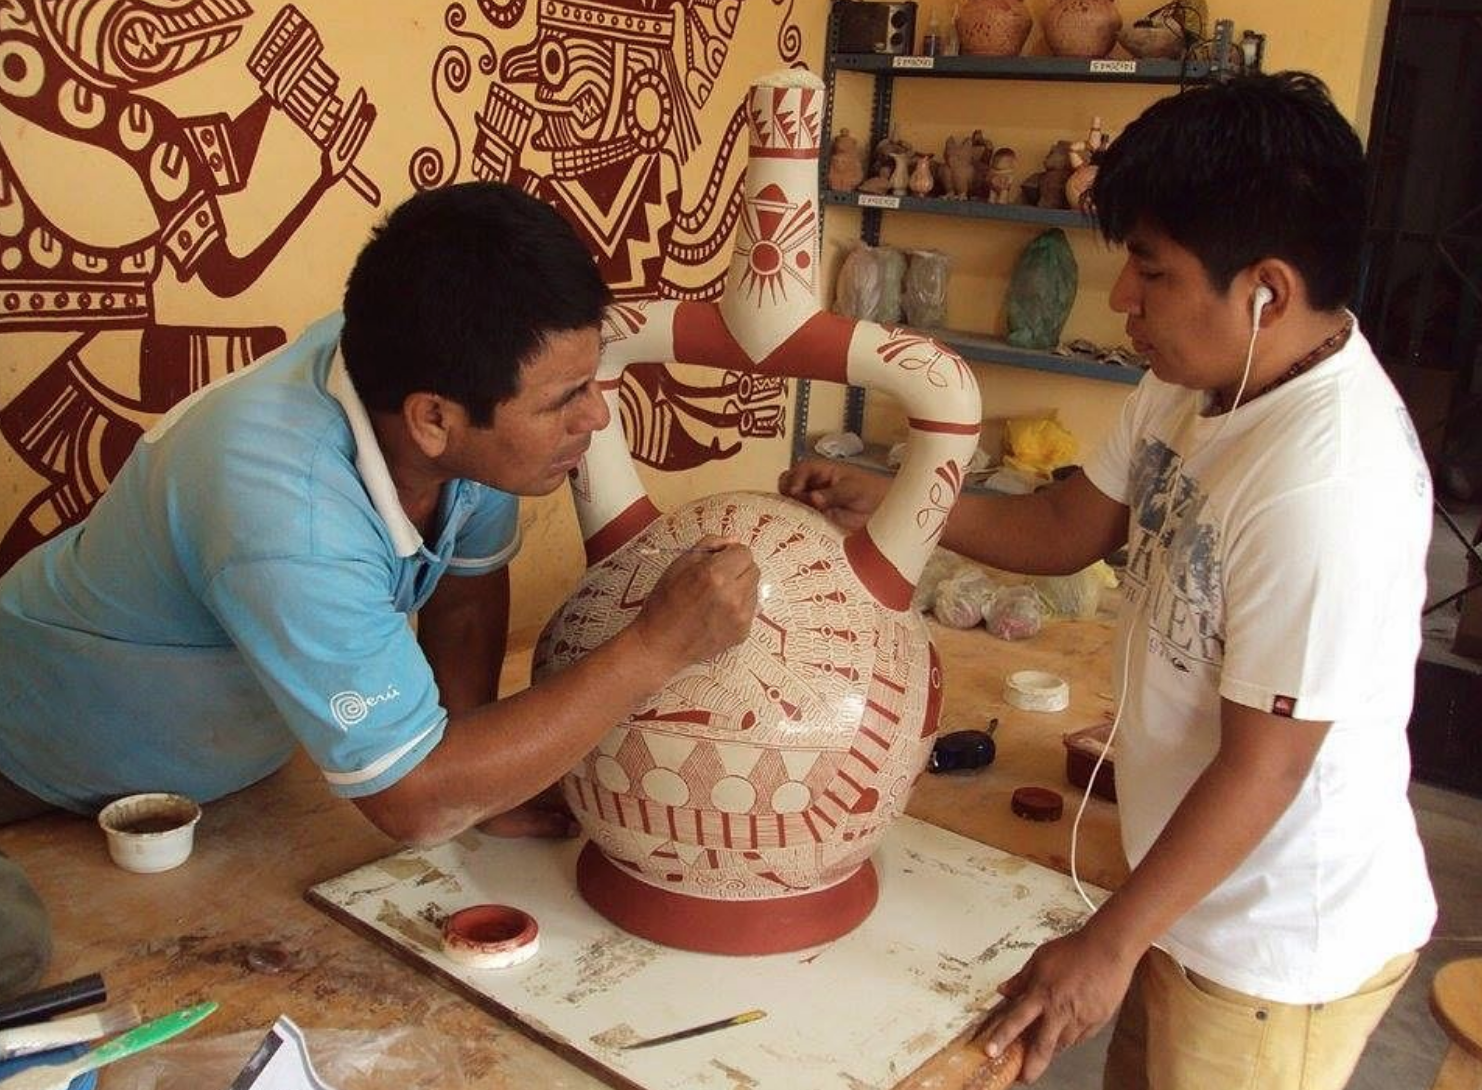 Artisans from SPI's San José de Moro project, overseen by Luis Jaime Castillo Butters. Entrepreneurs living near the site create high quality replicas of ceramics found at the site.